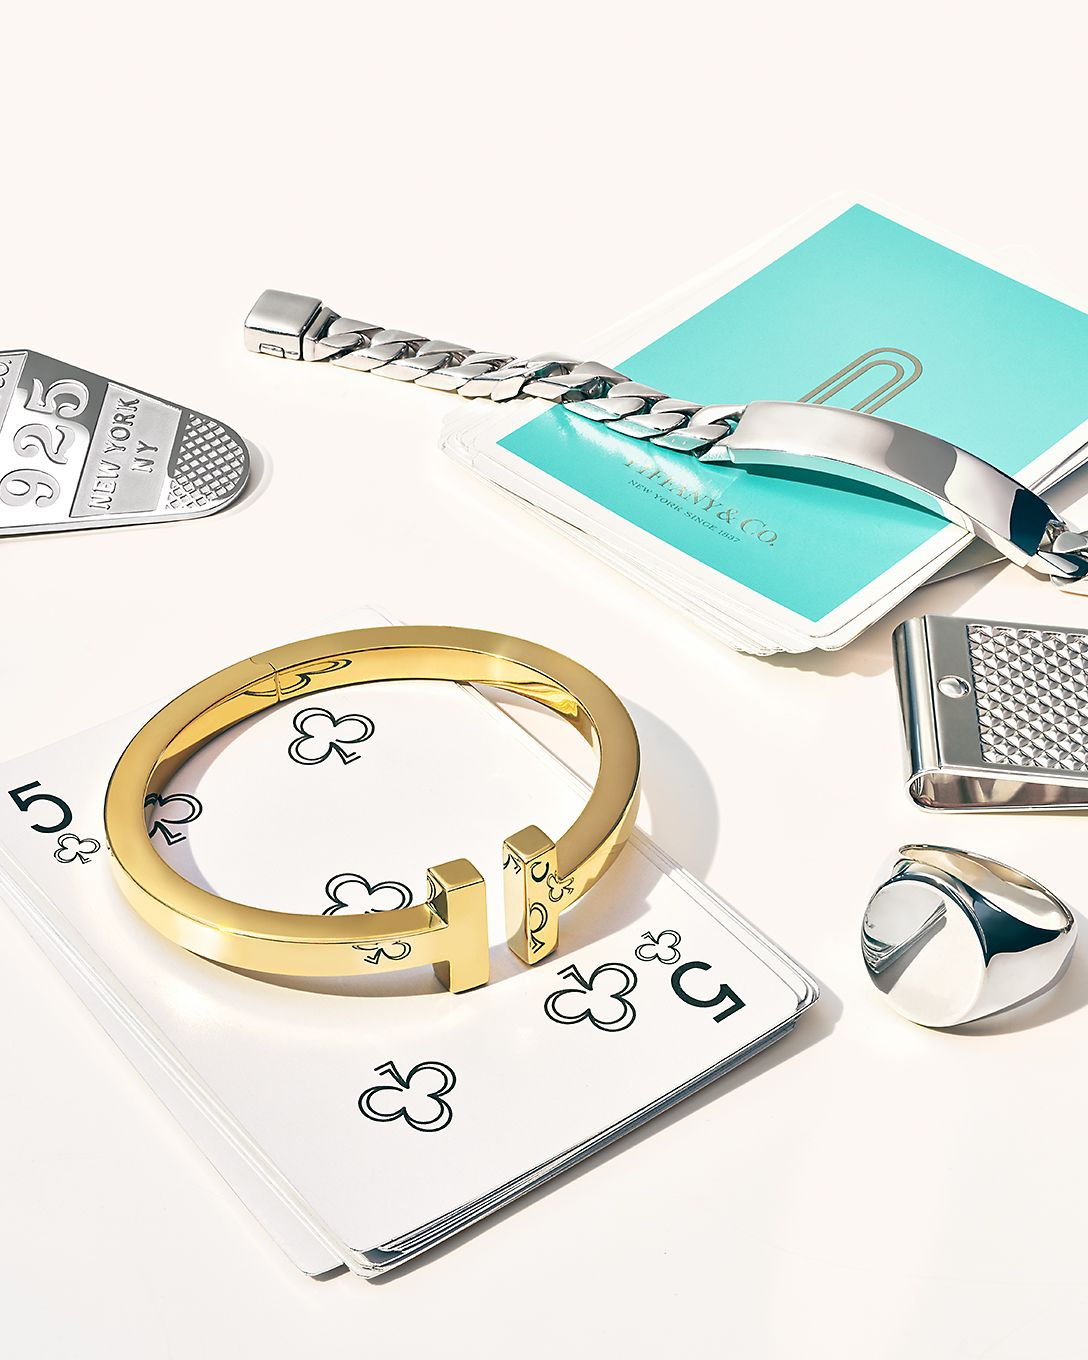 Shop Tiffany & Co. Gifts for Him